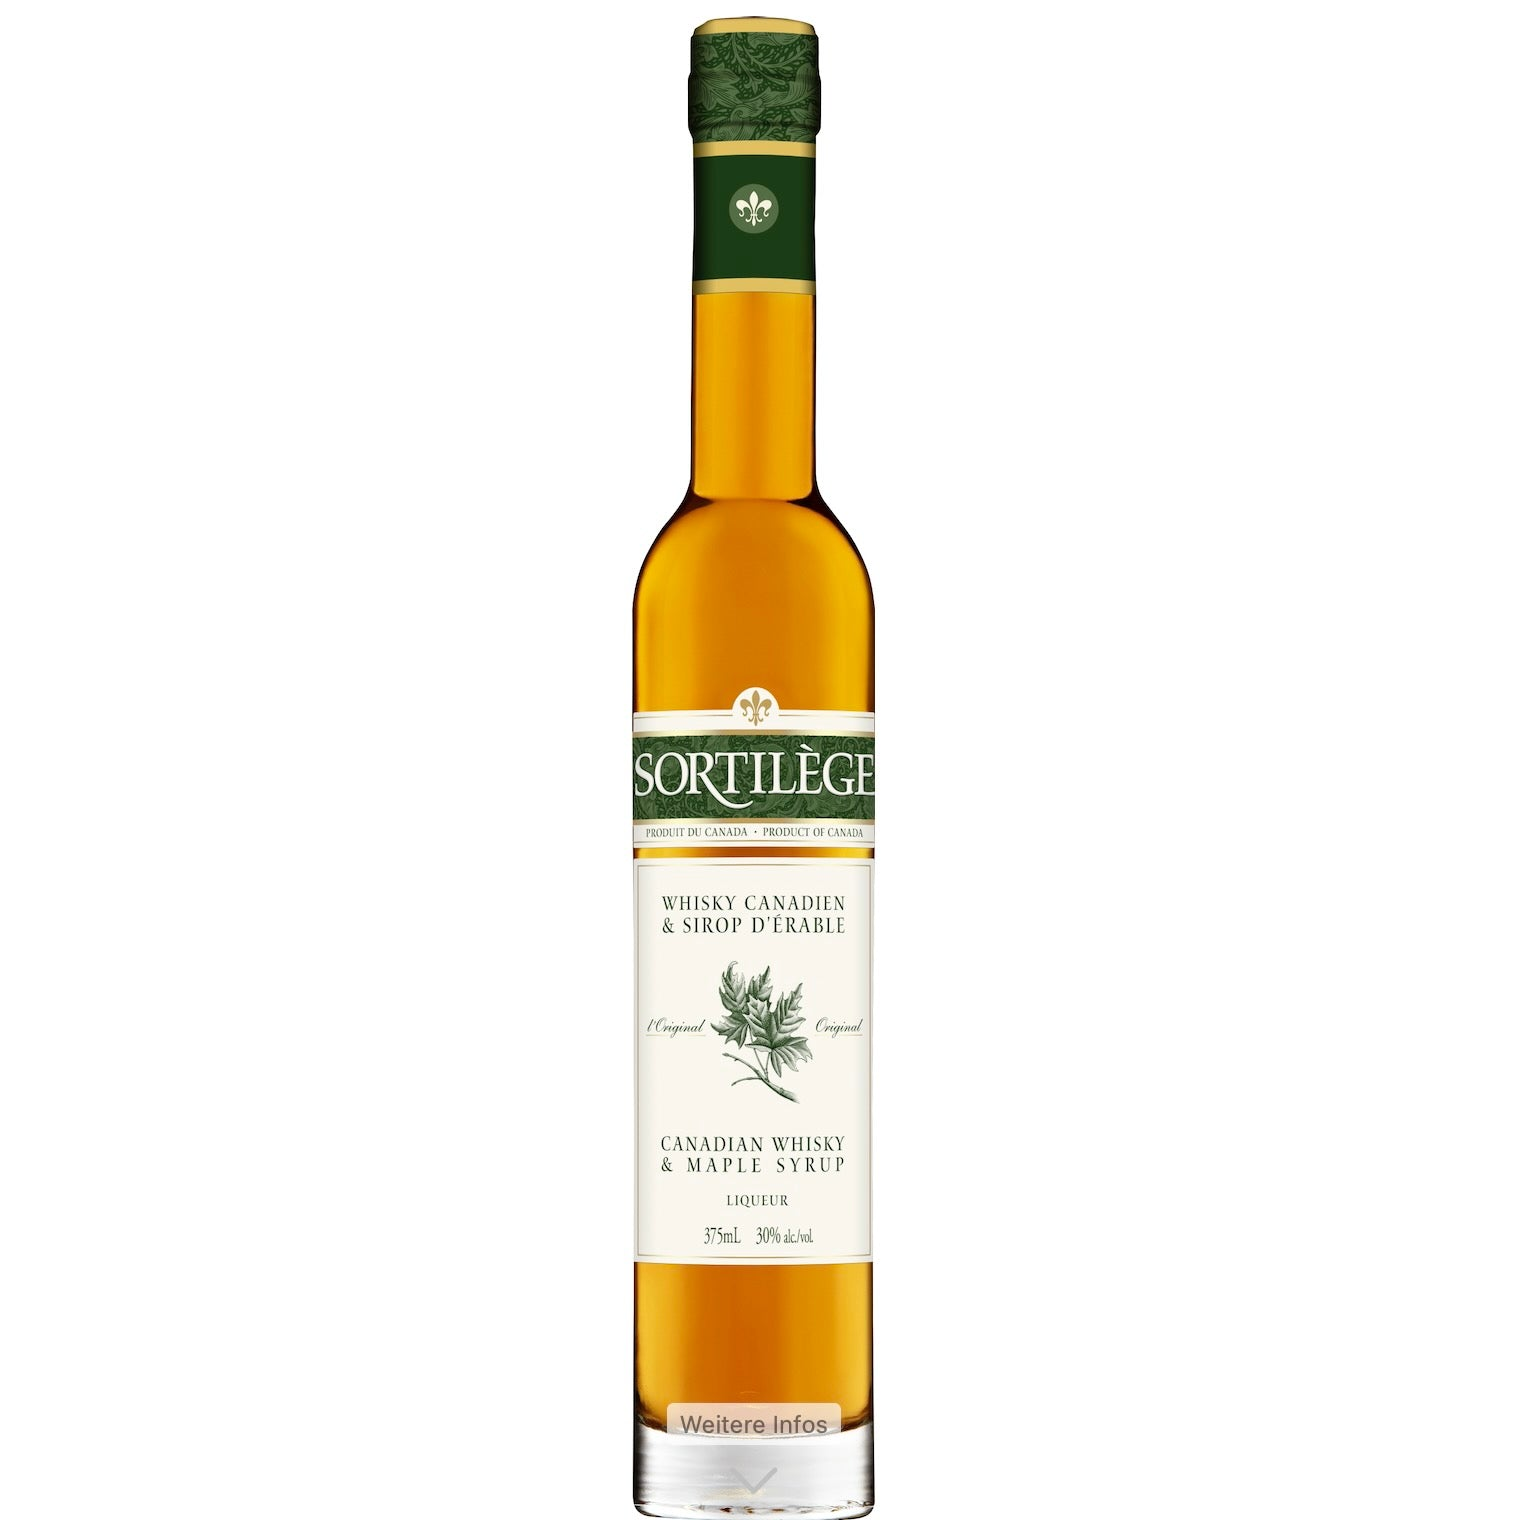 Sortilège - Canadian Whisky with maple syrup 375ml